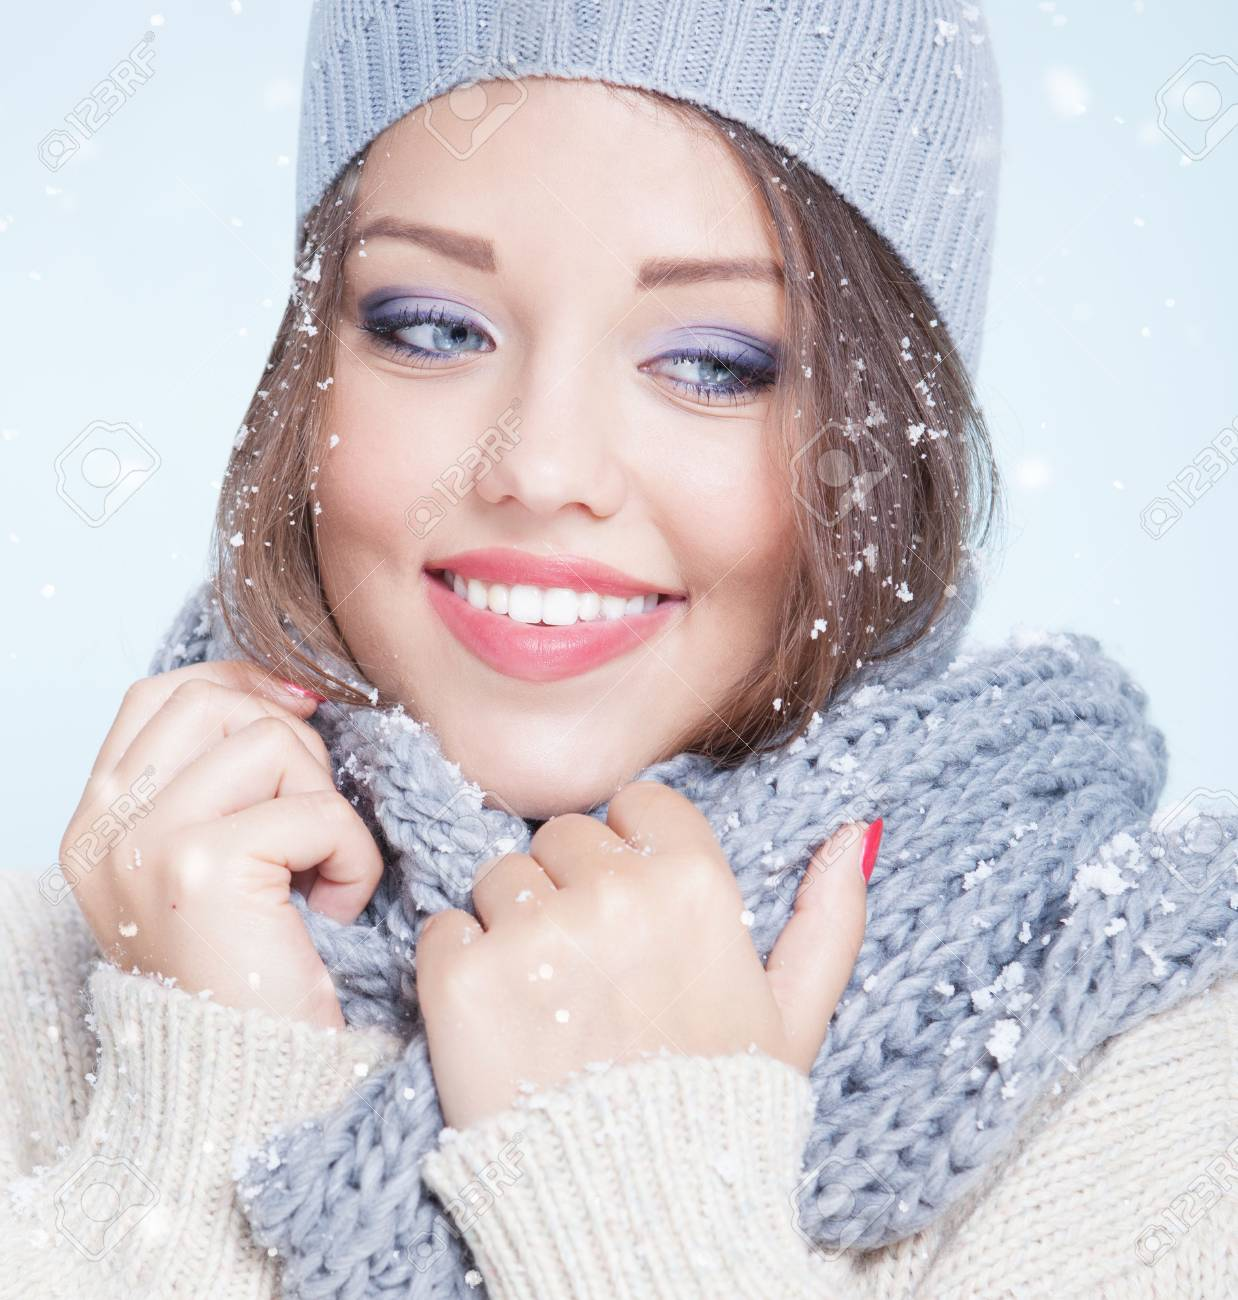 Winter face close up of young attractive happy smiling woman covered with snow flakes. Christmas concept. - 47610262